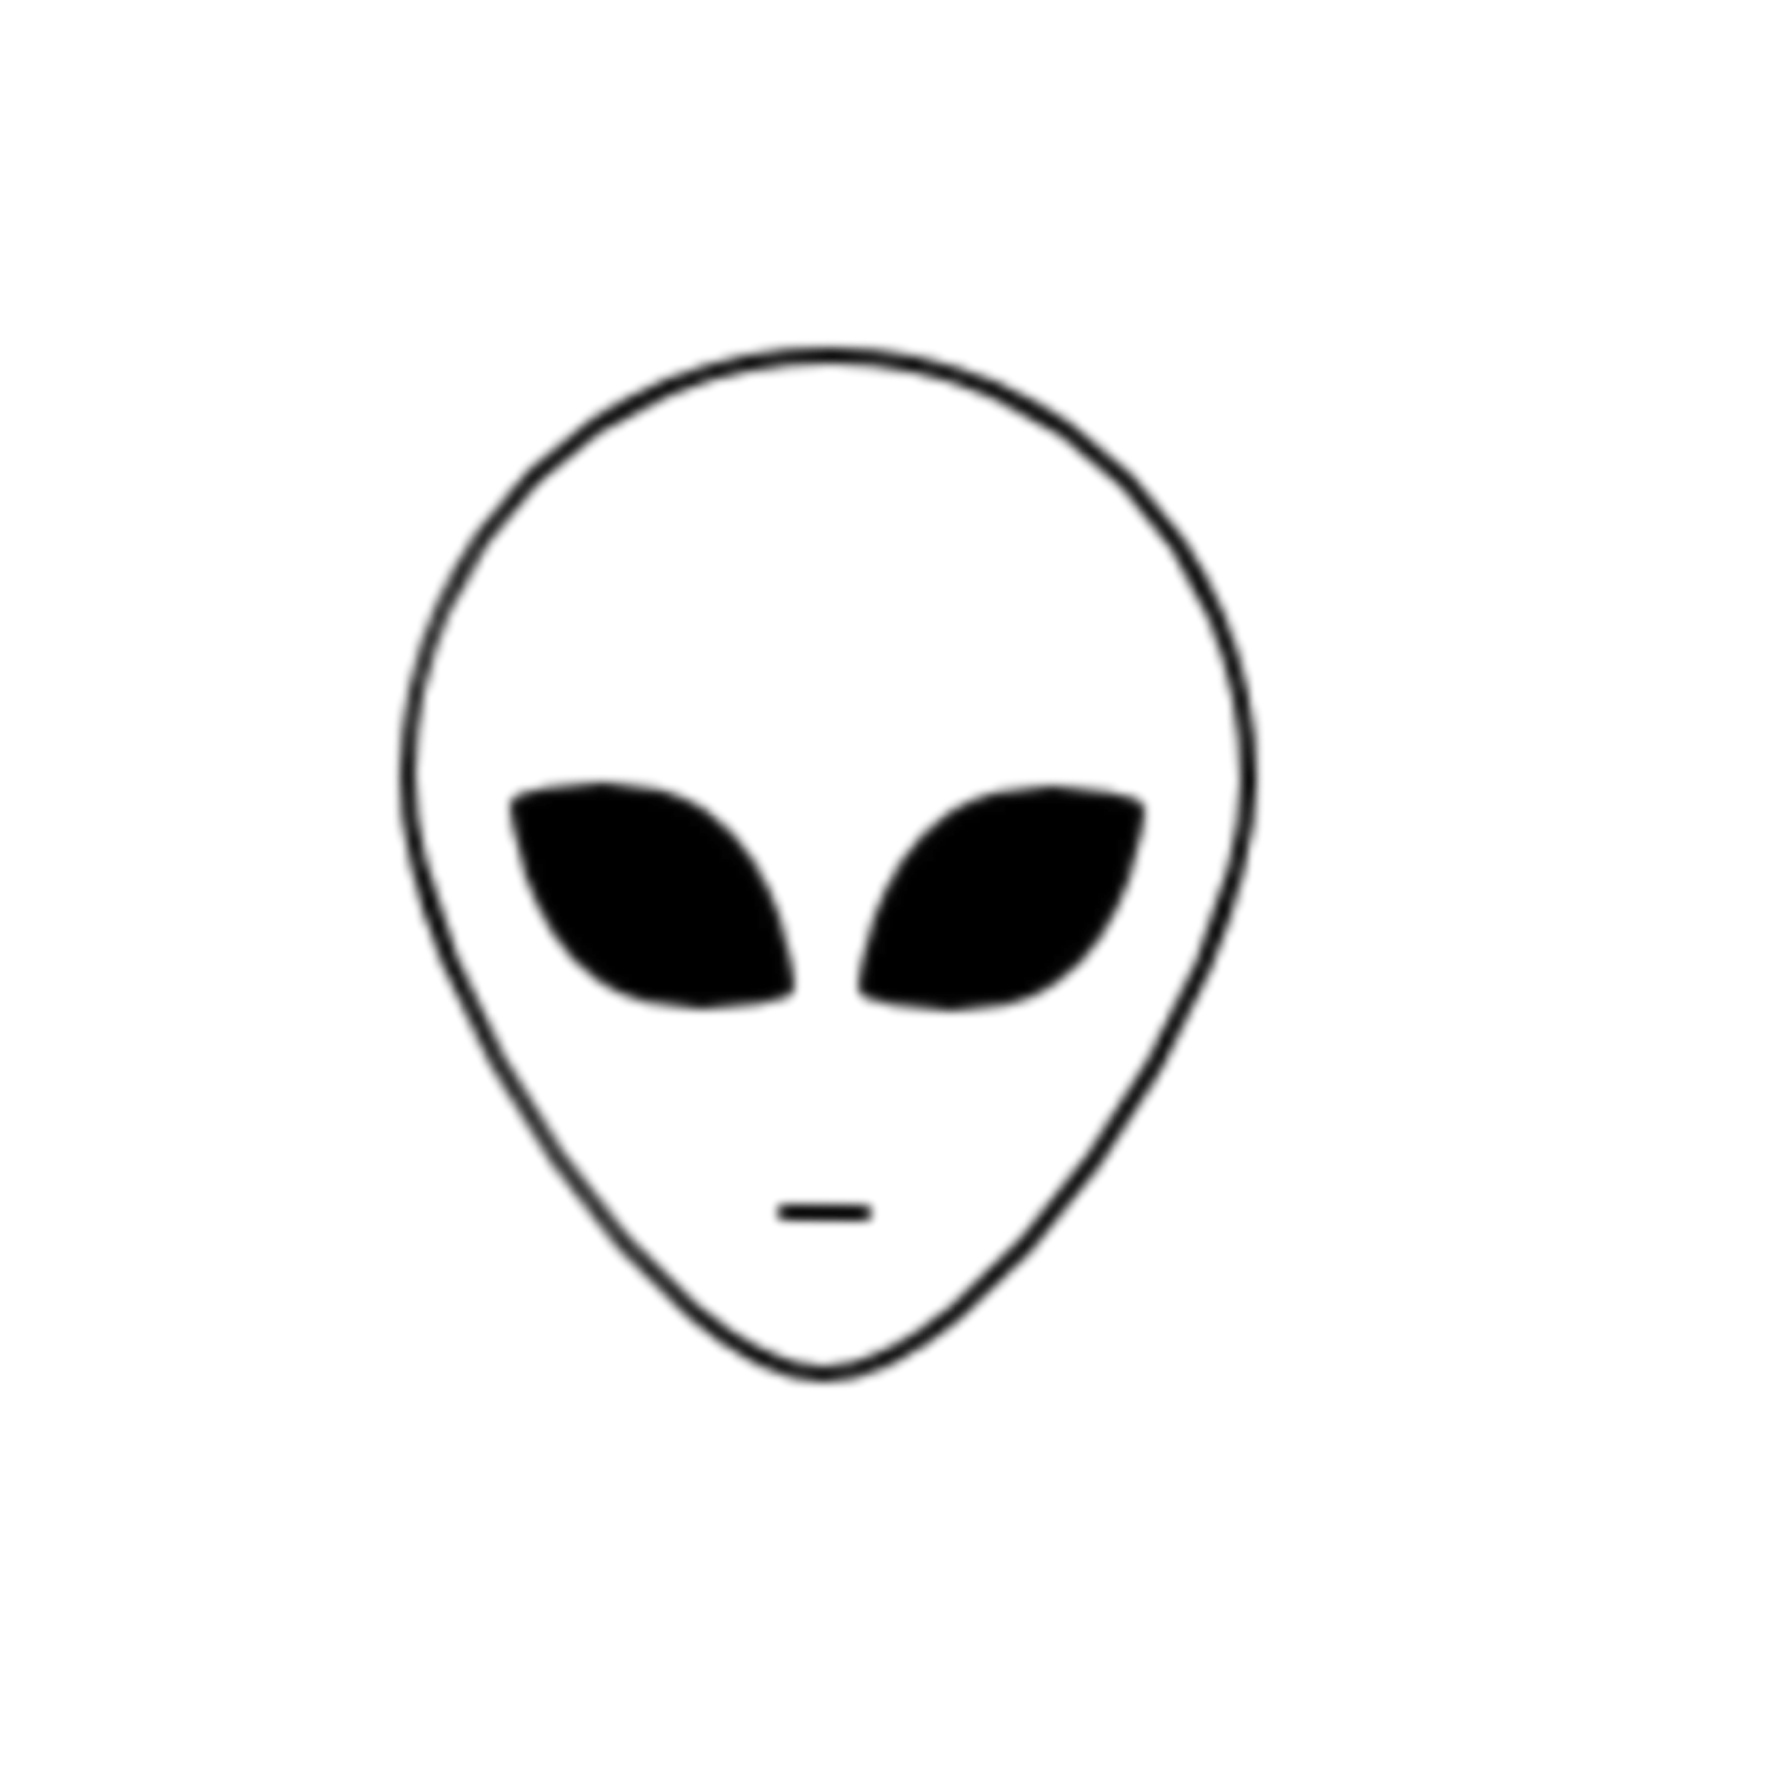 Simple Alien Drawing At Paintingvalley